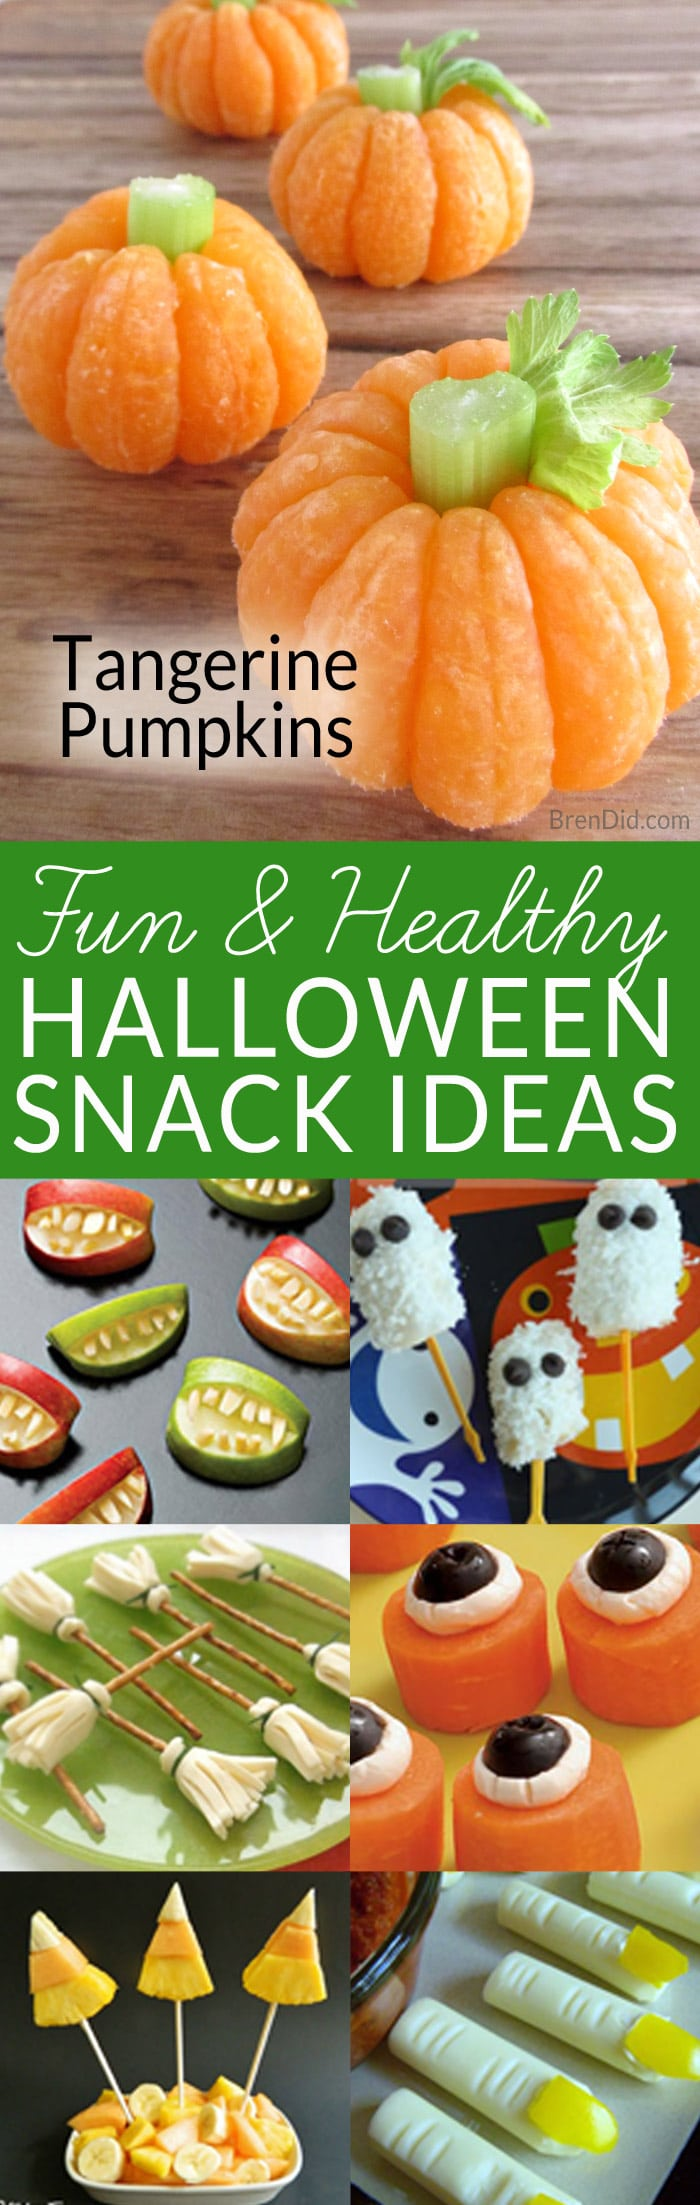 Sick of sugar at Halloween?  Kids love easy tangerine pumpkins or one of the other healthy Halloween treats. #Halloween #halloweentreats #healthykids #brendid